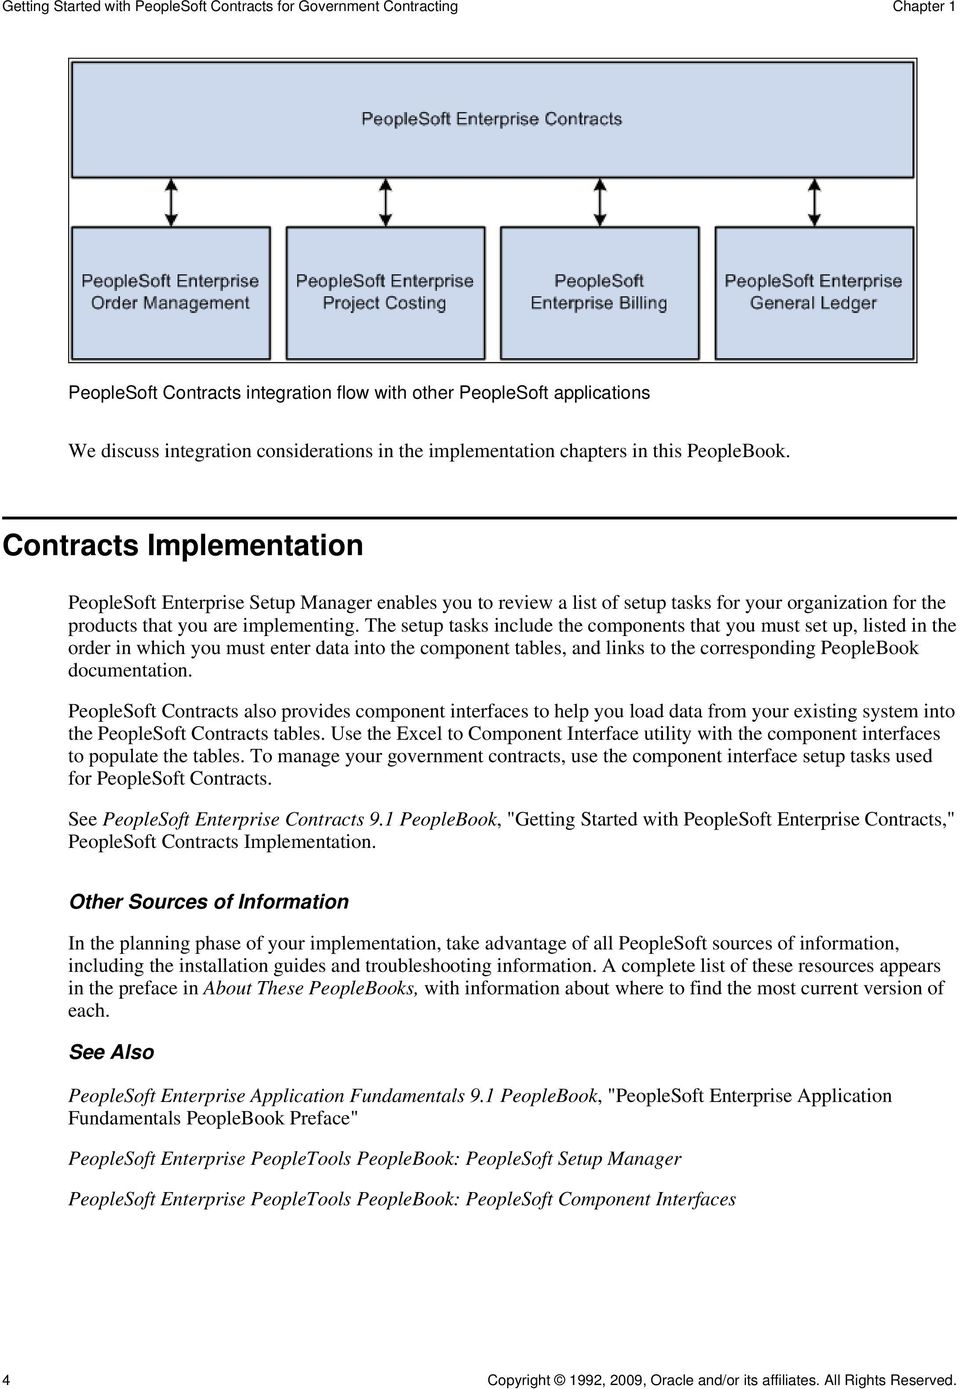 Contracts Implementation PeopleSoft Enterprise Setup Manager enables you to review a list of setup tasks for your organization for the products that you are implementing.